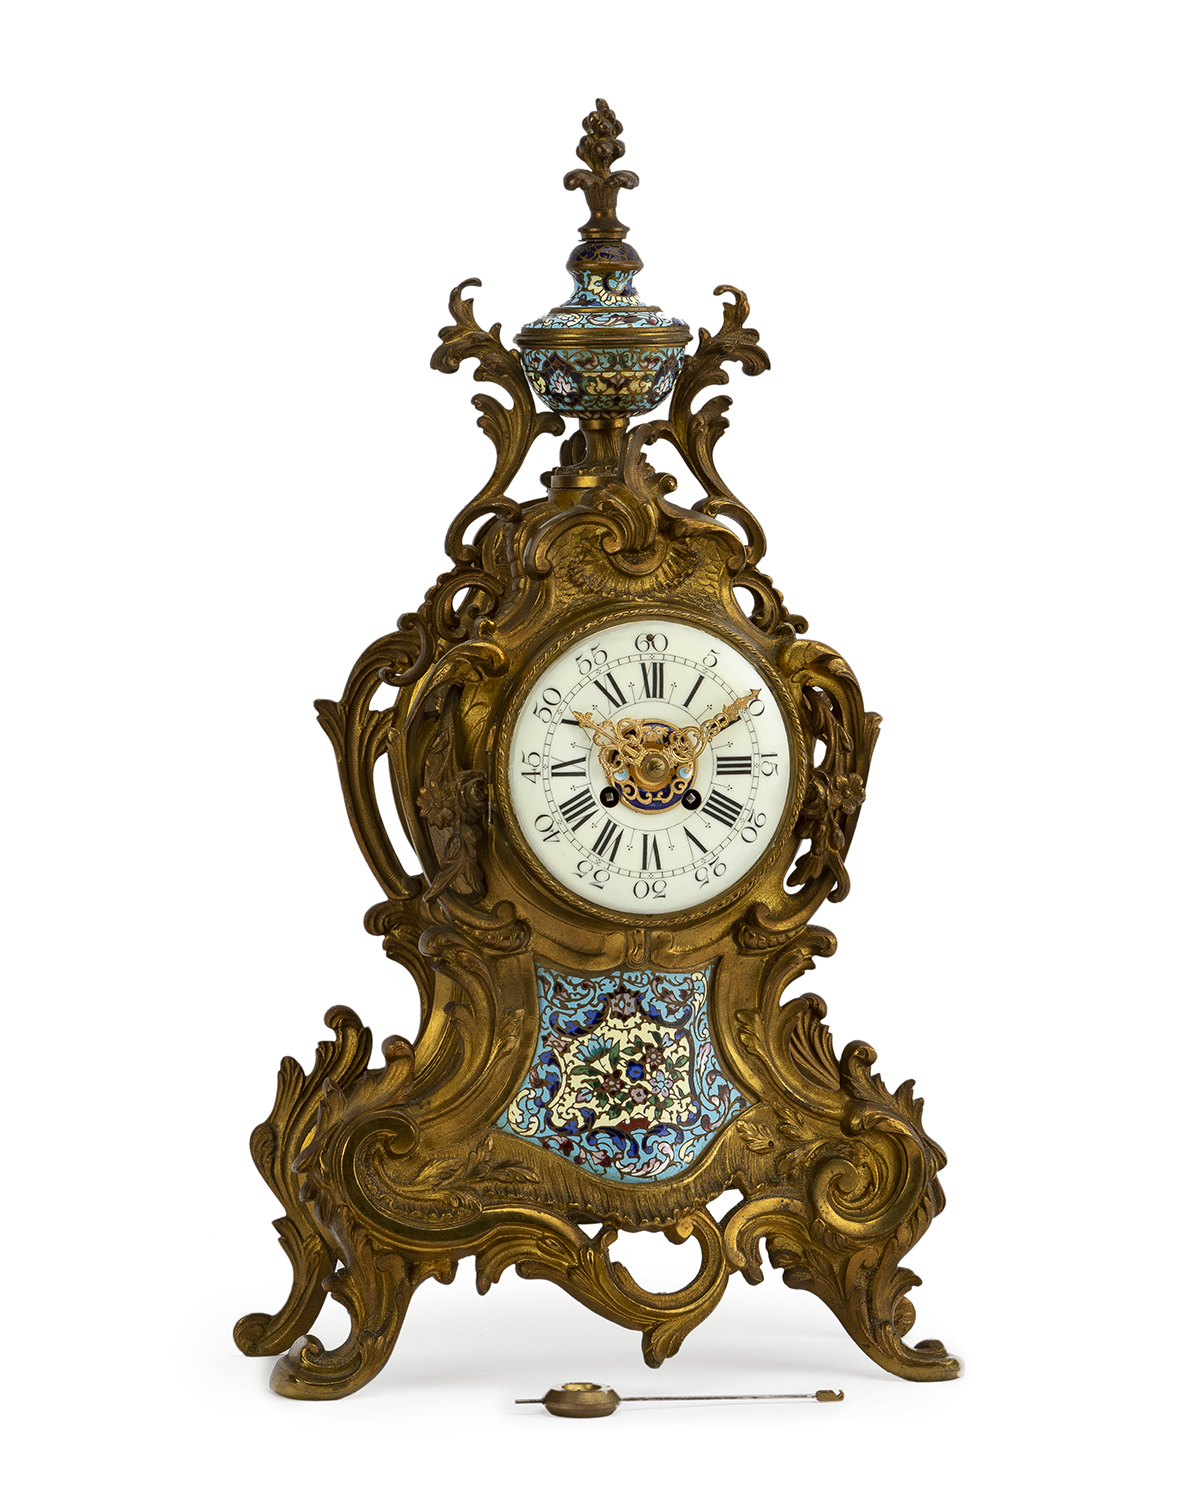 A French bronze and champleve mantle clock